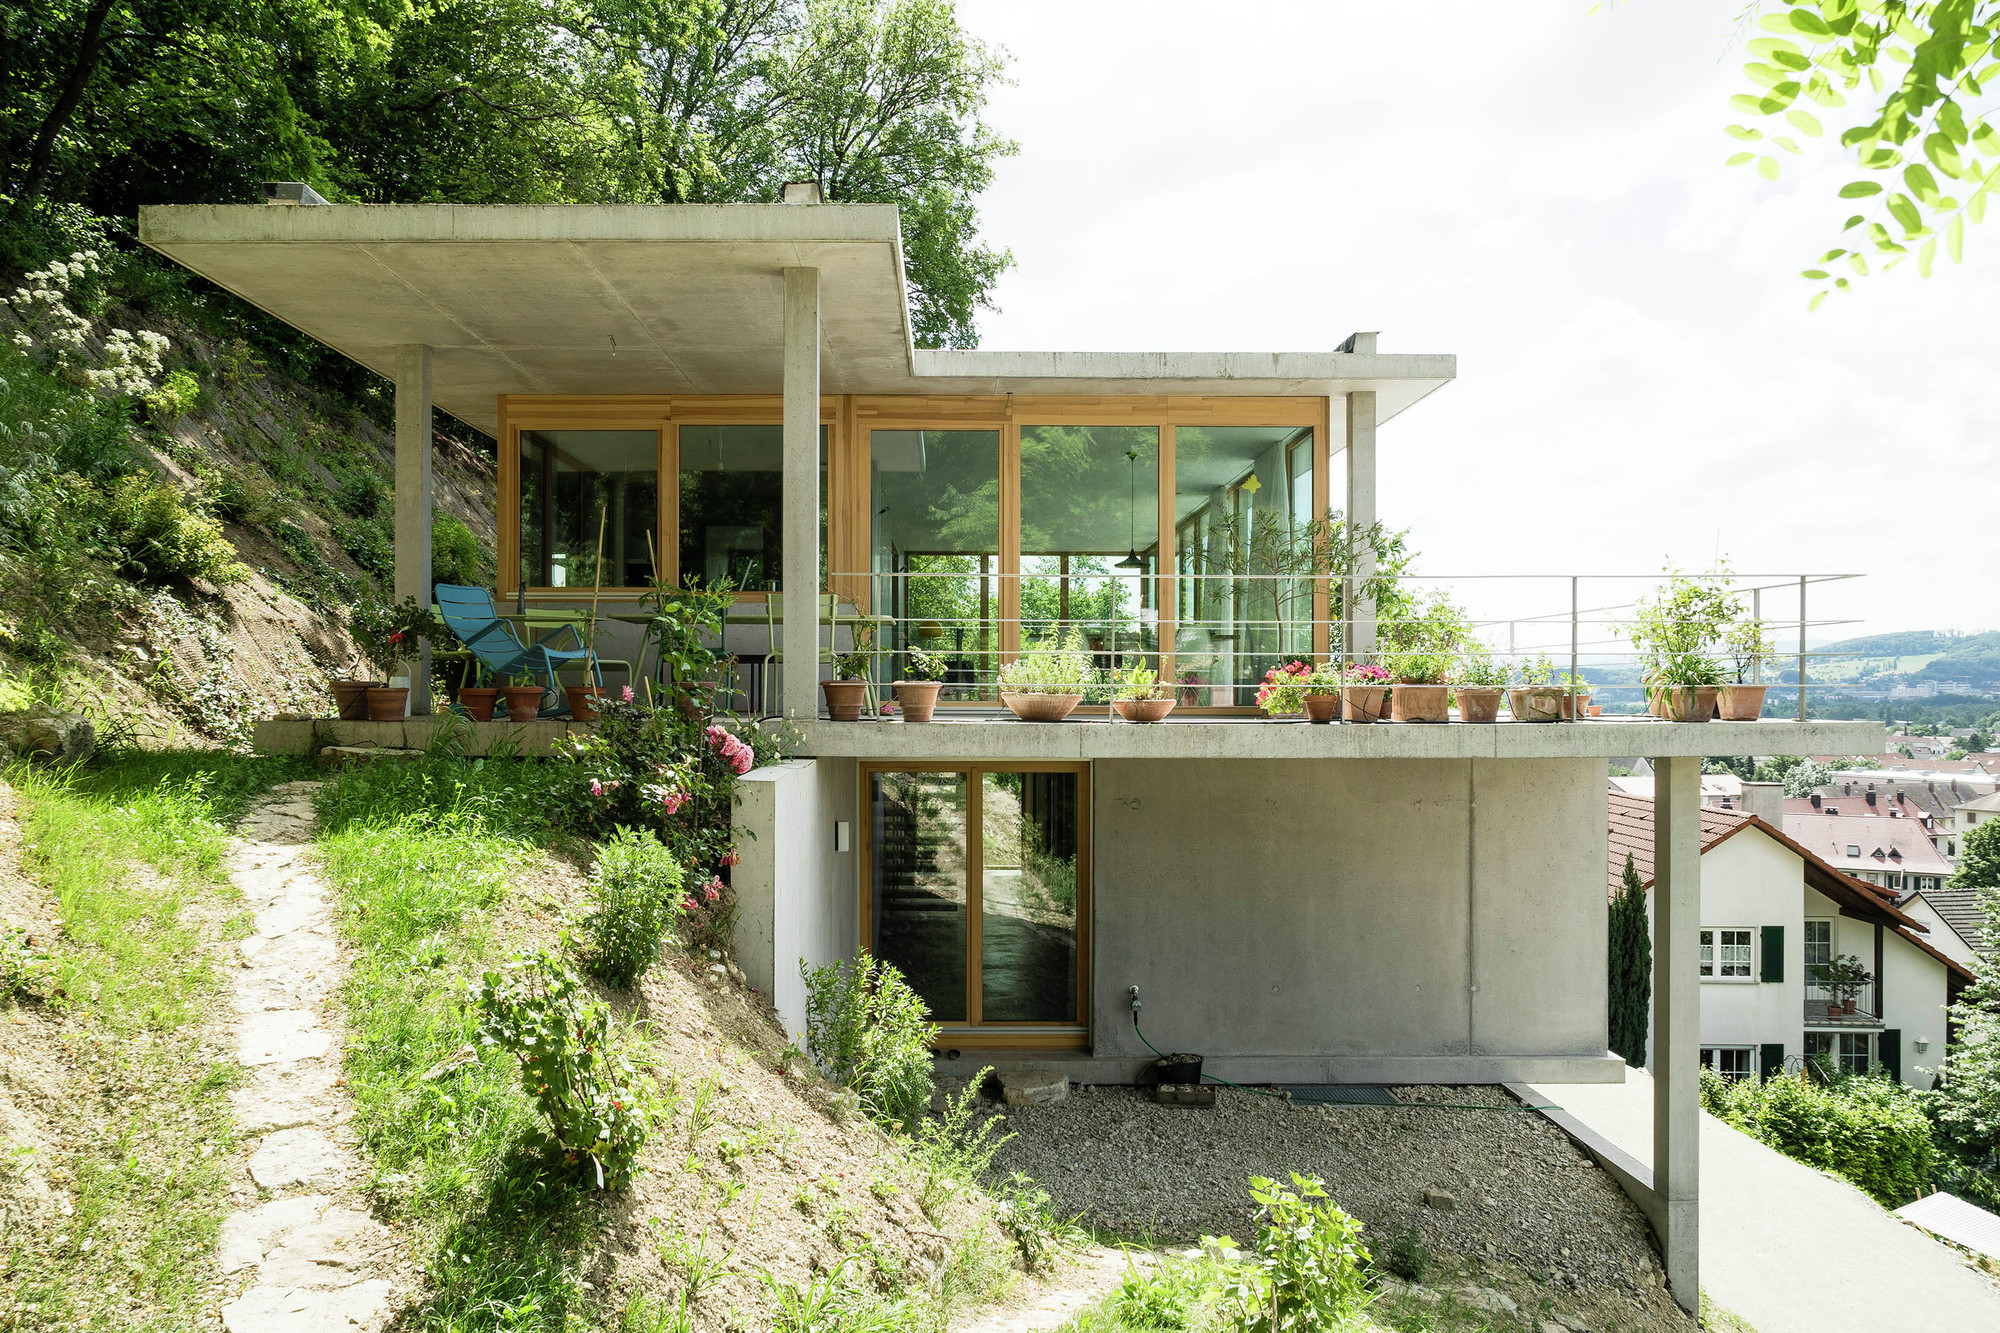 House on a slope gian salis architect archdaily for House plans on hill slopes